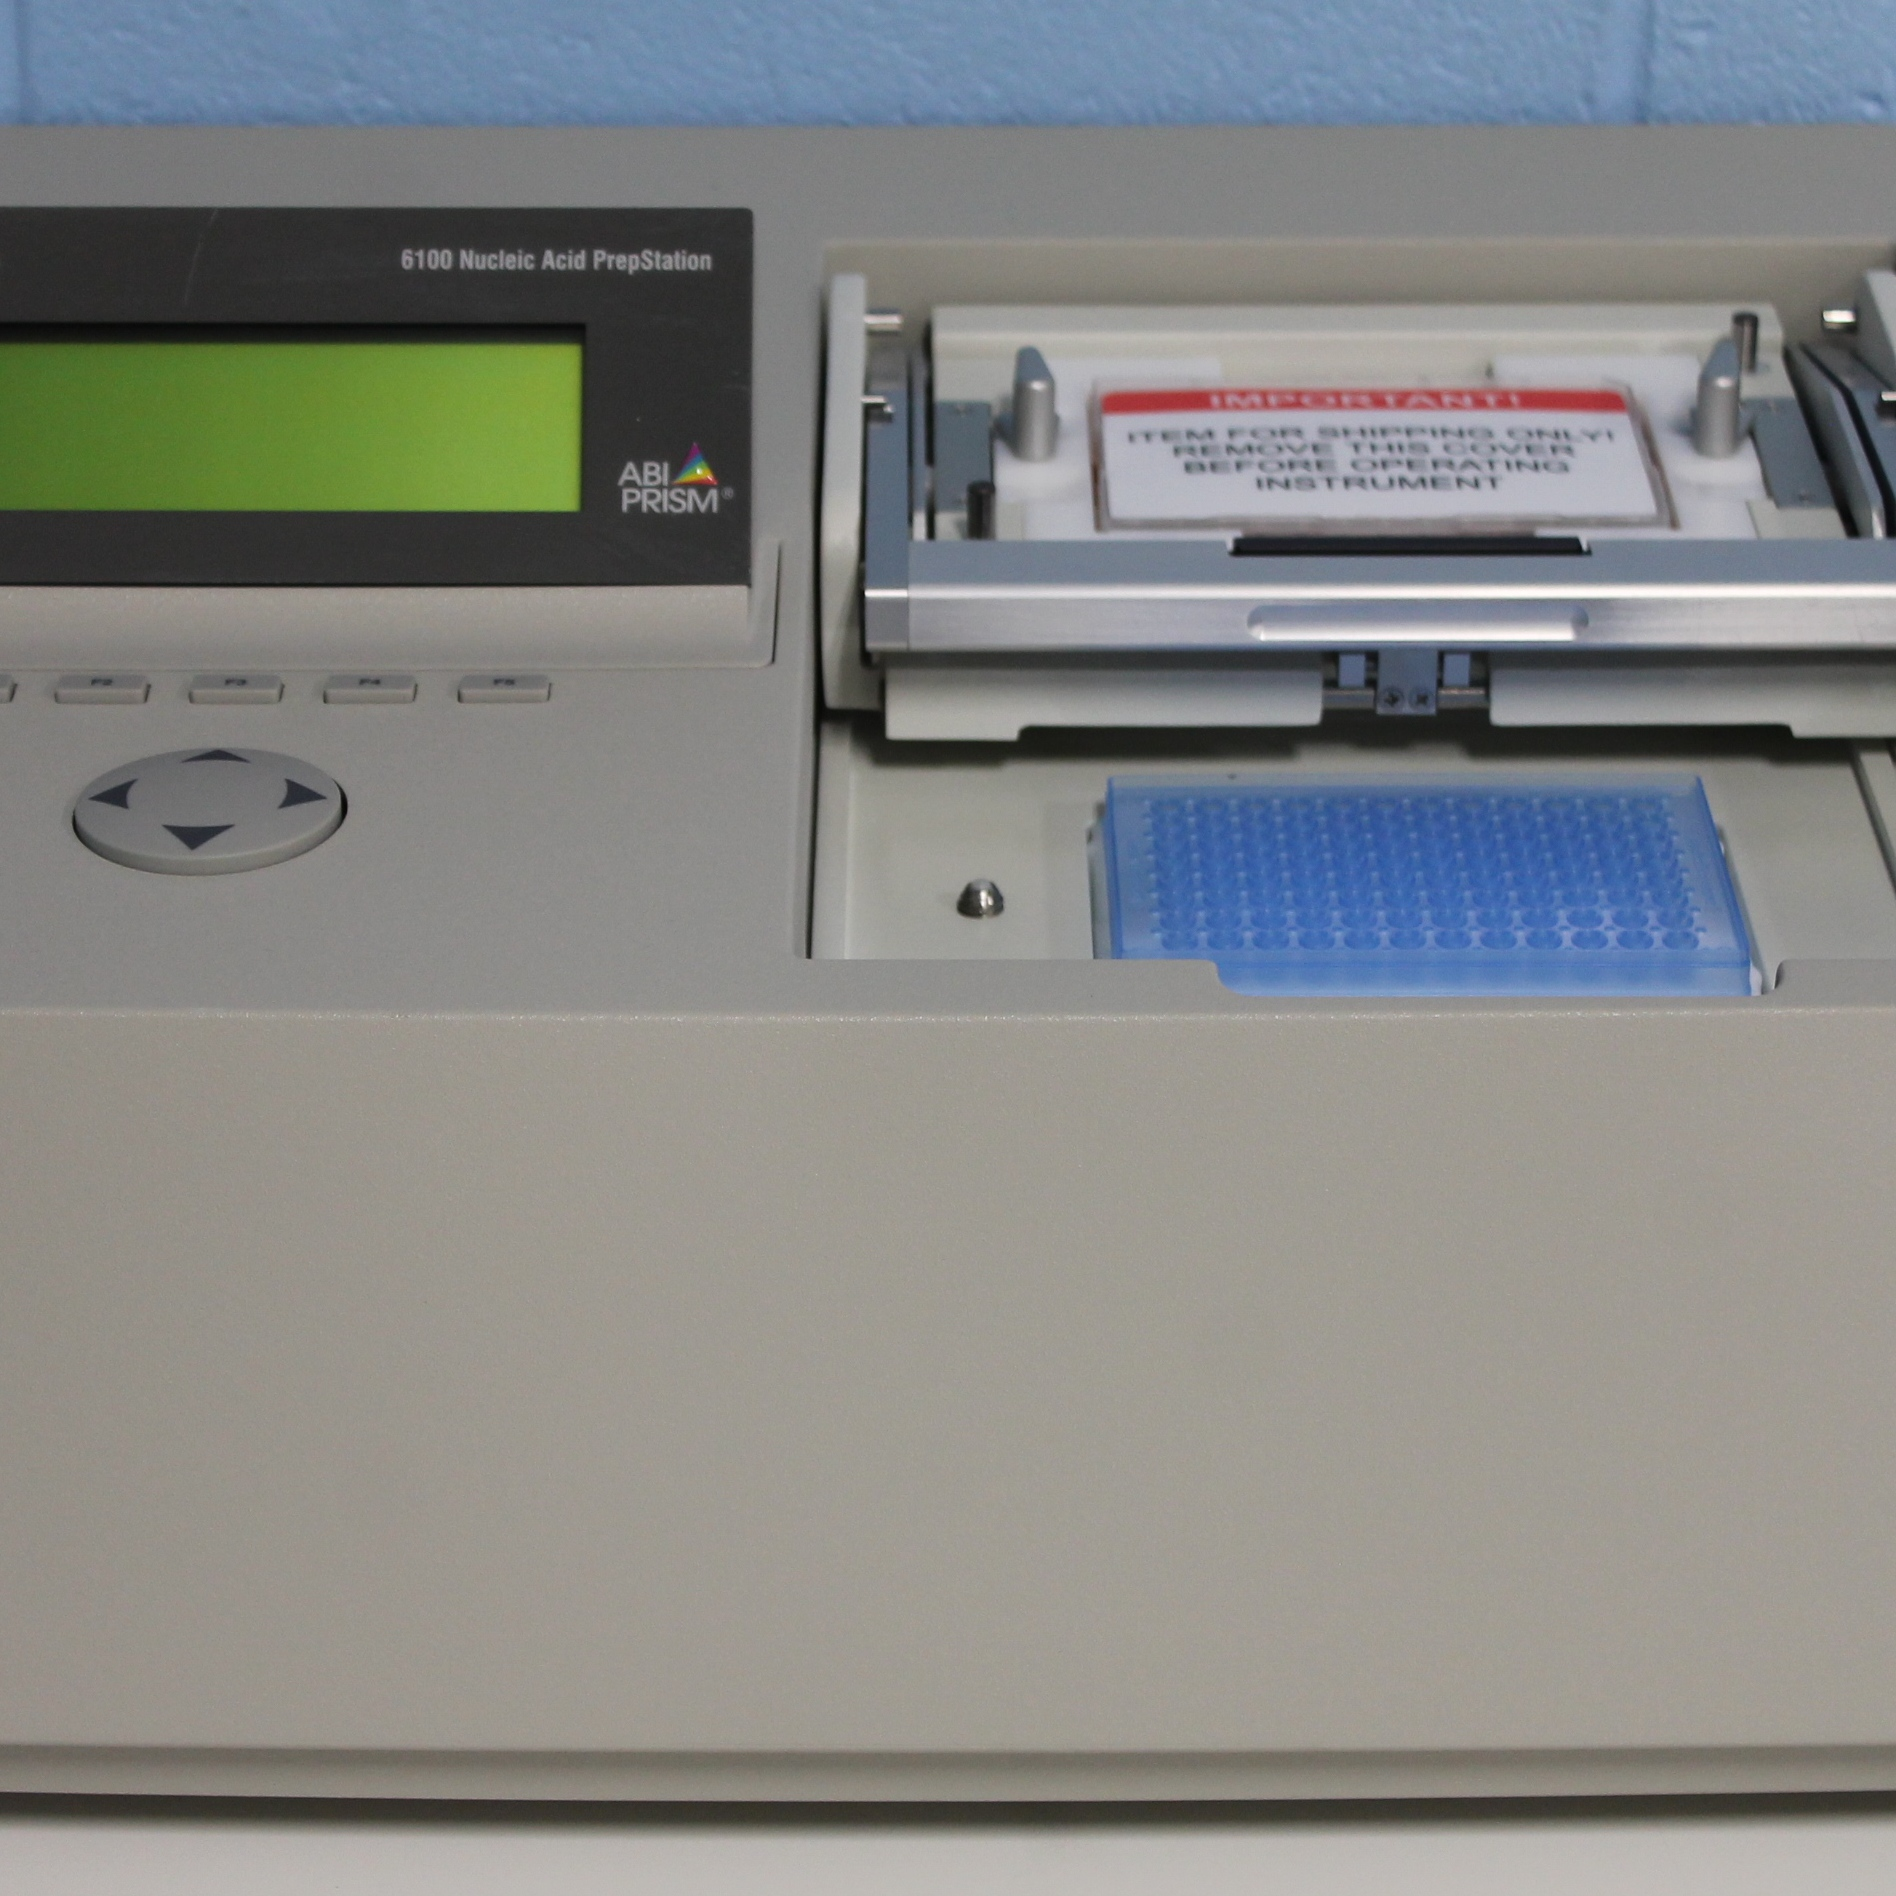 Applied Biosystems ABI PRISM 6100 Nucleic Acid PrepStation P/N 4326351 Image